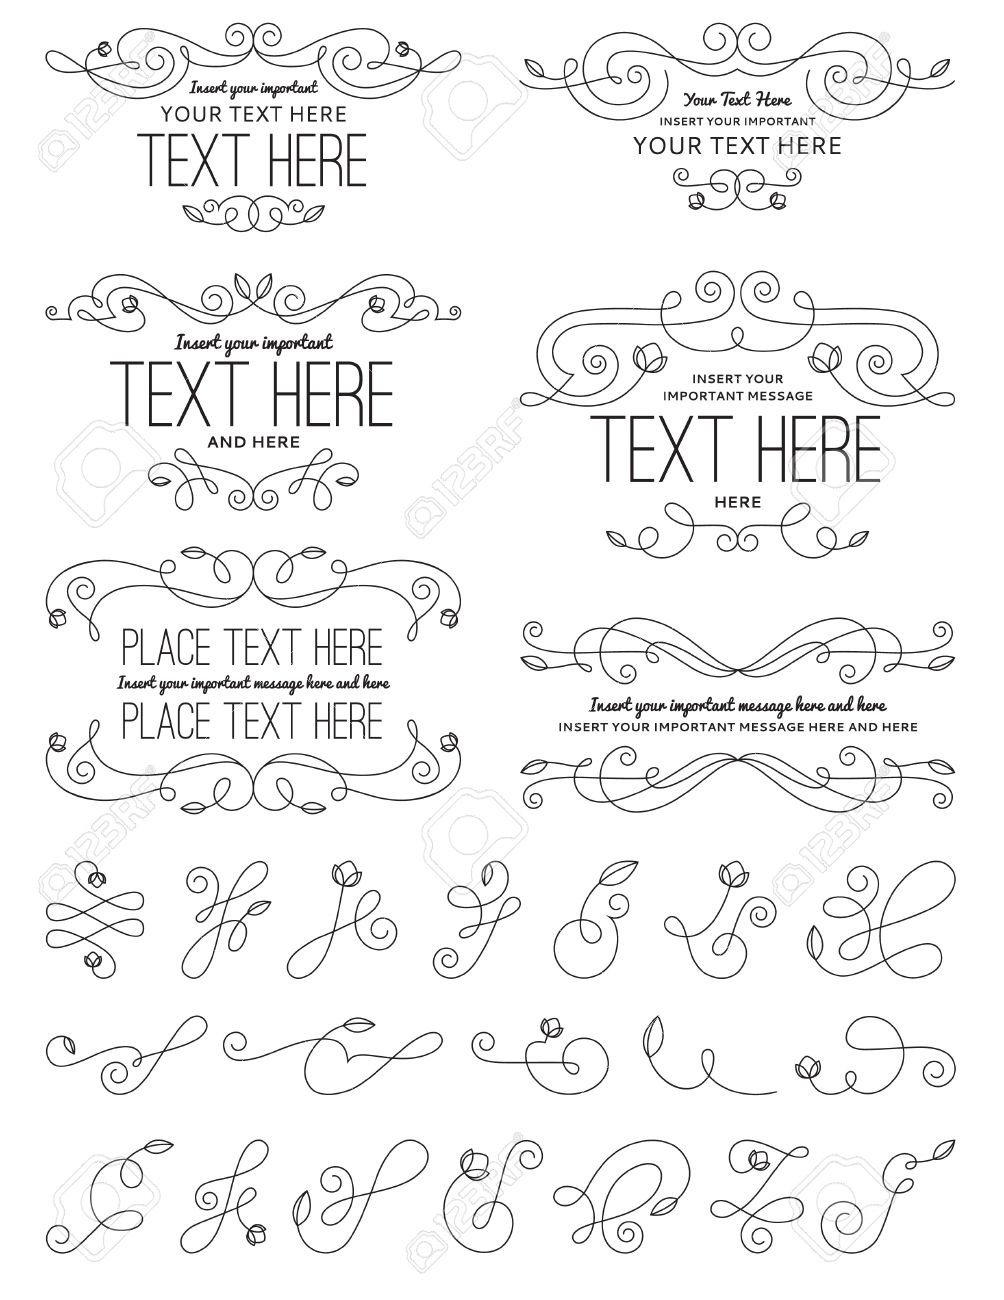 Vintage Calligraphy Flower Design Elements Royalty Free Cliparts